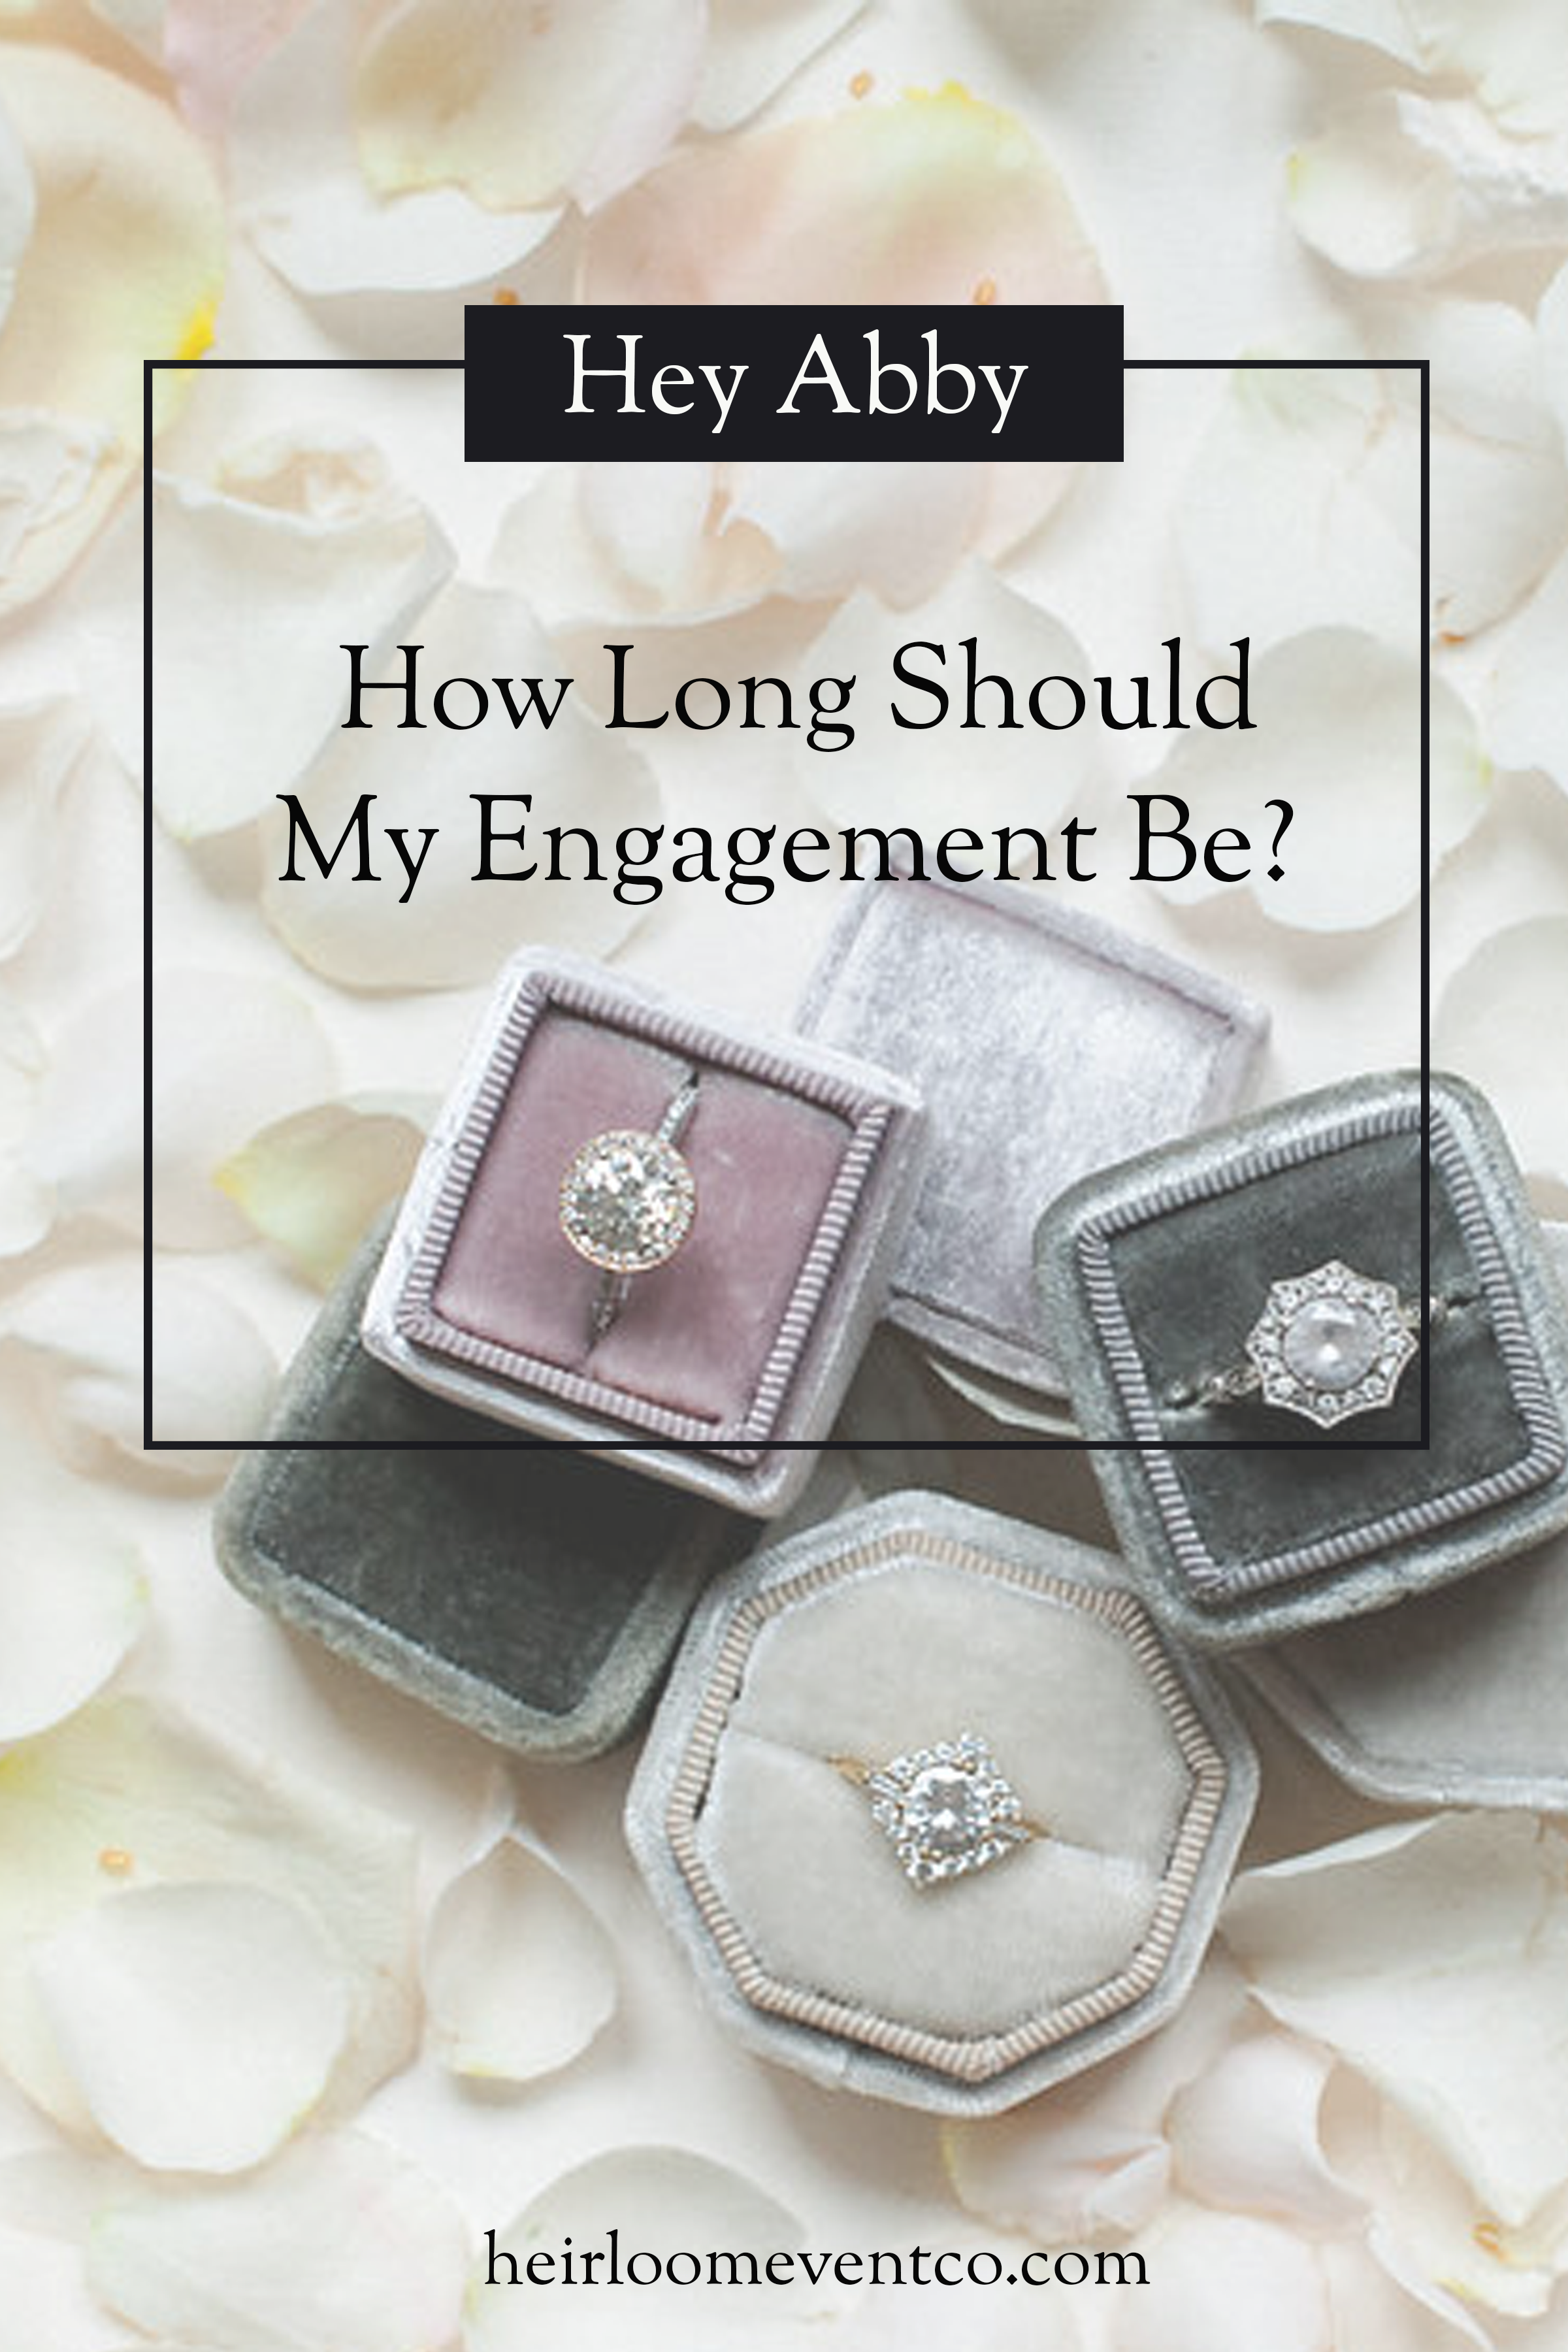 Heirloom Event Co. | How Long Should My Engagement Be?